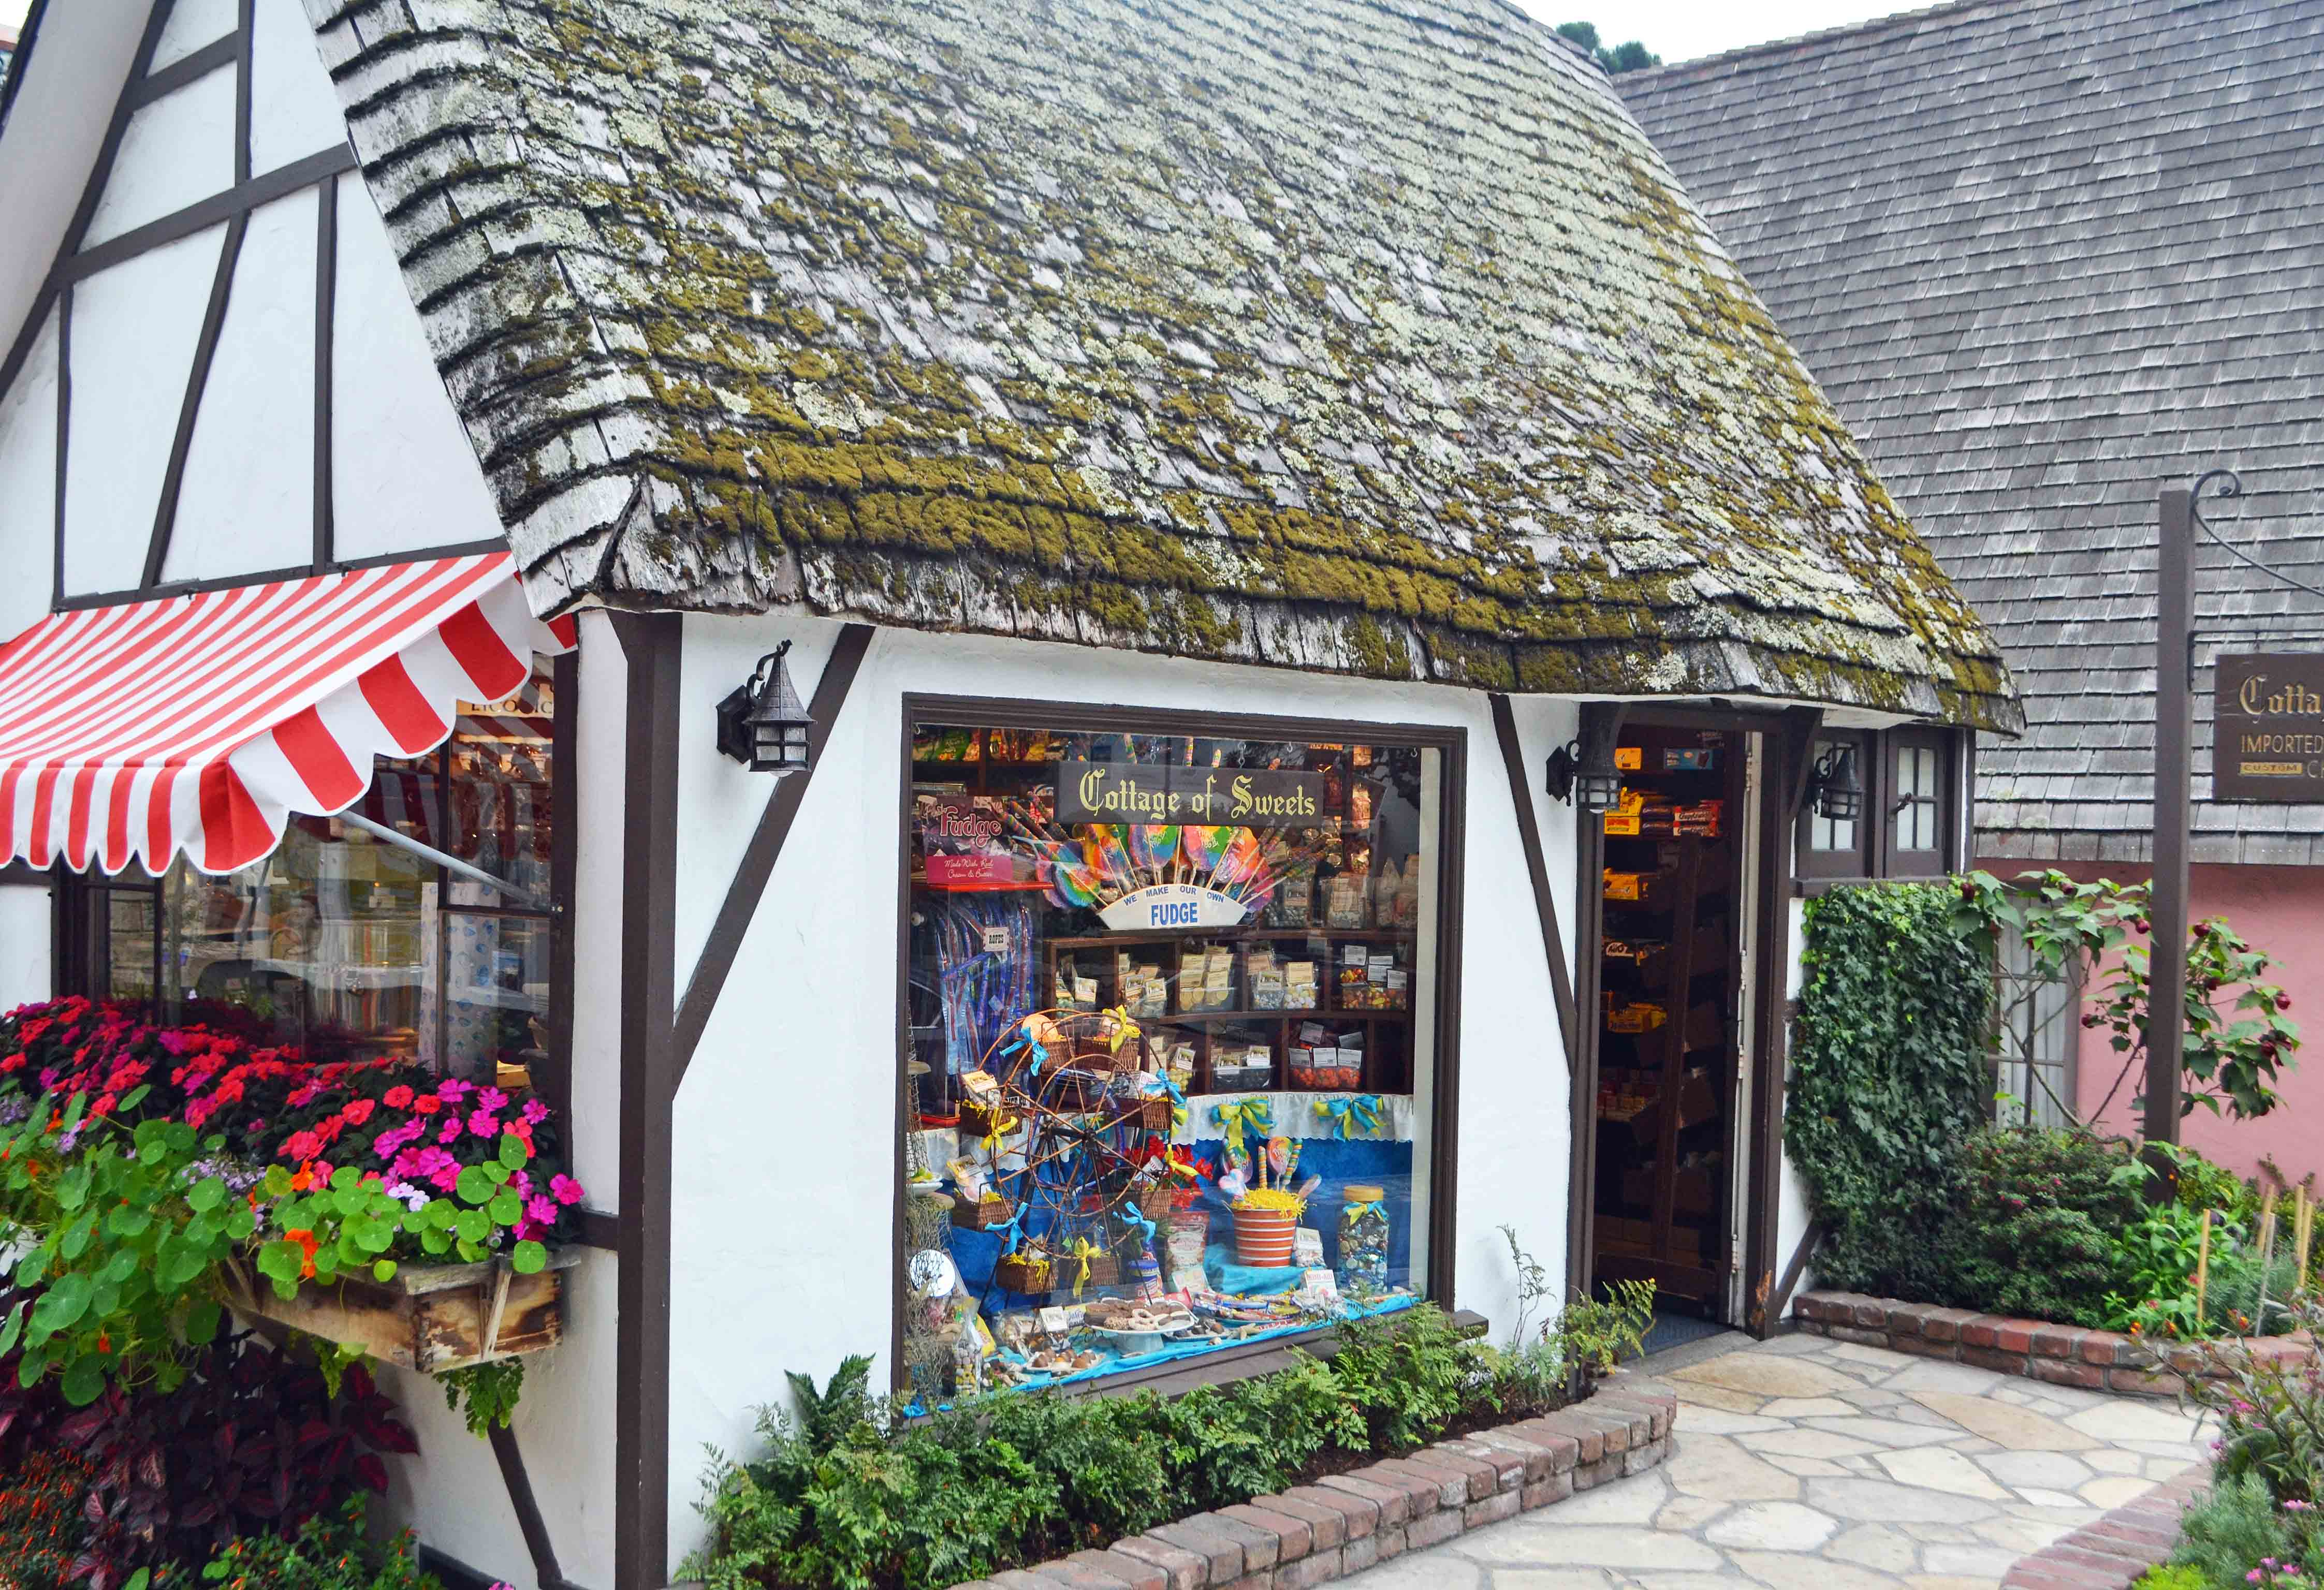 Carmel by the Sea Cottage of Sweets l best places to eat in Carmel